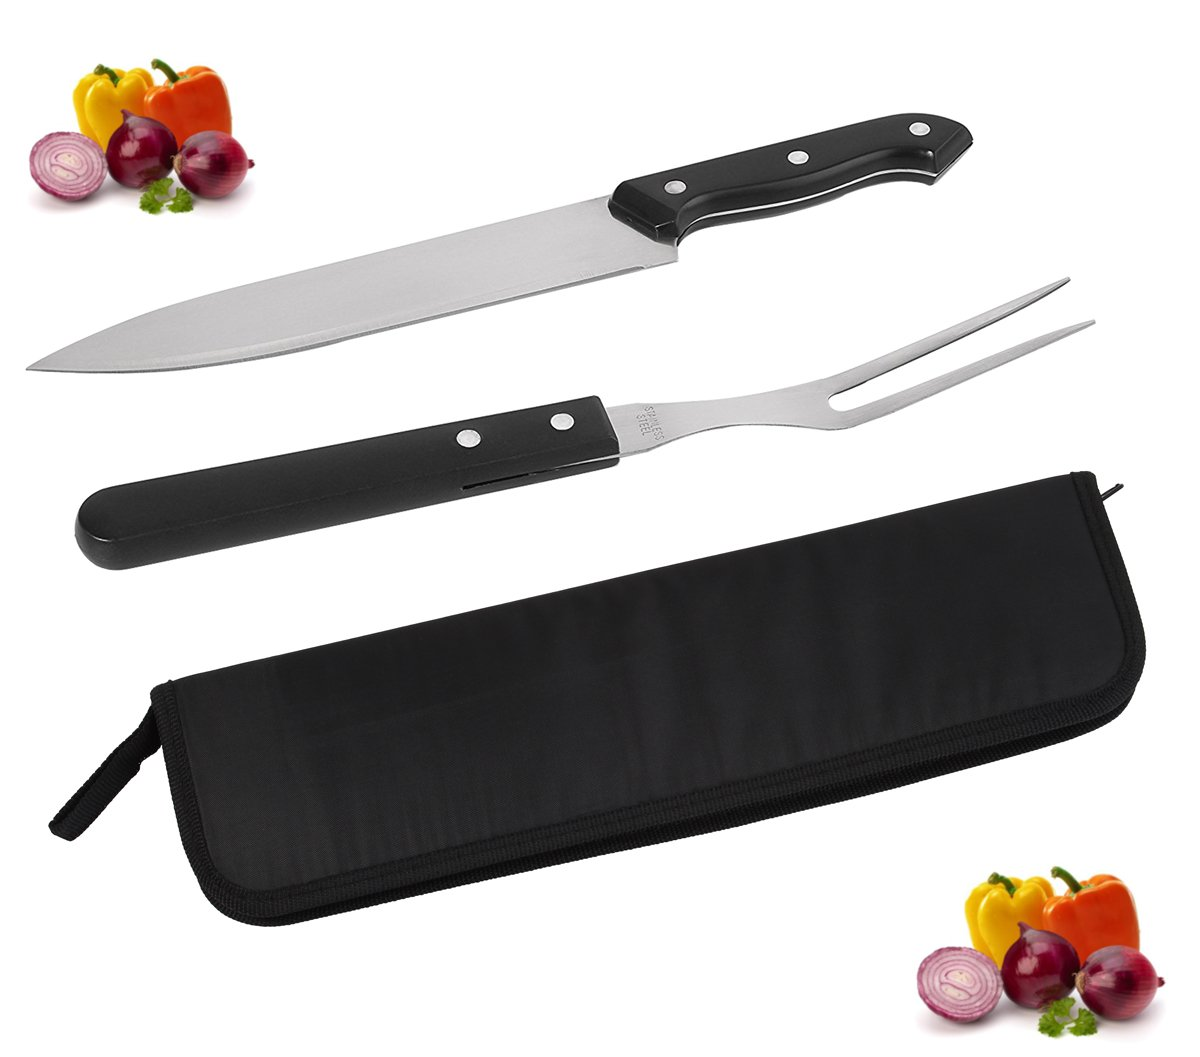 POLIGO Cutlery Carving Knife S...